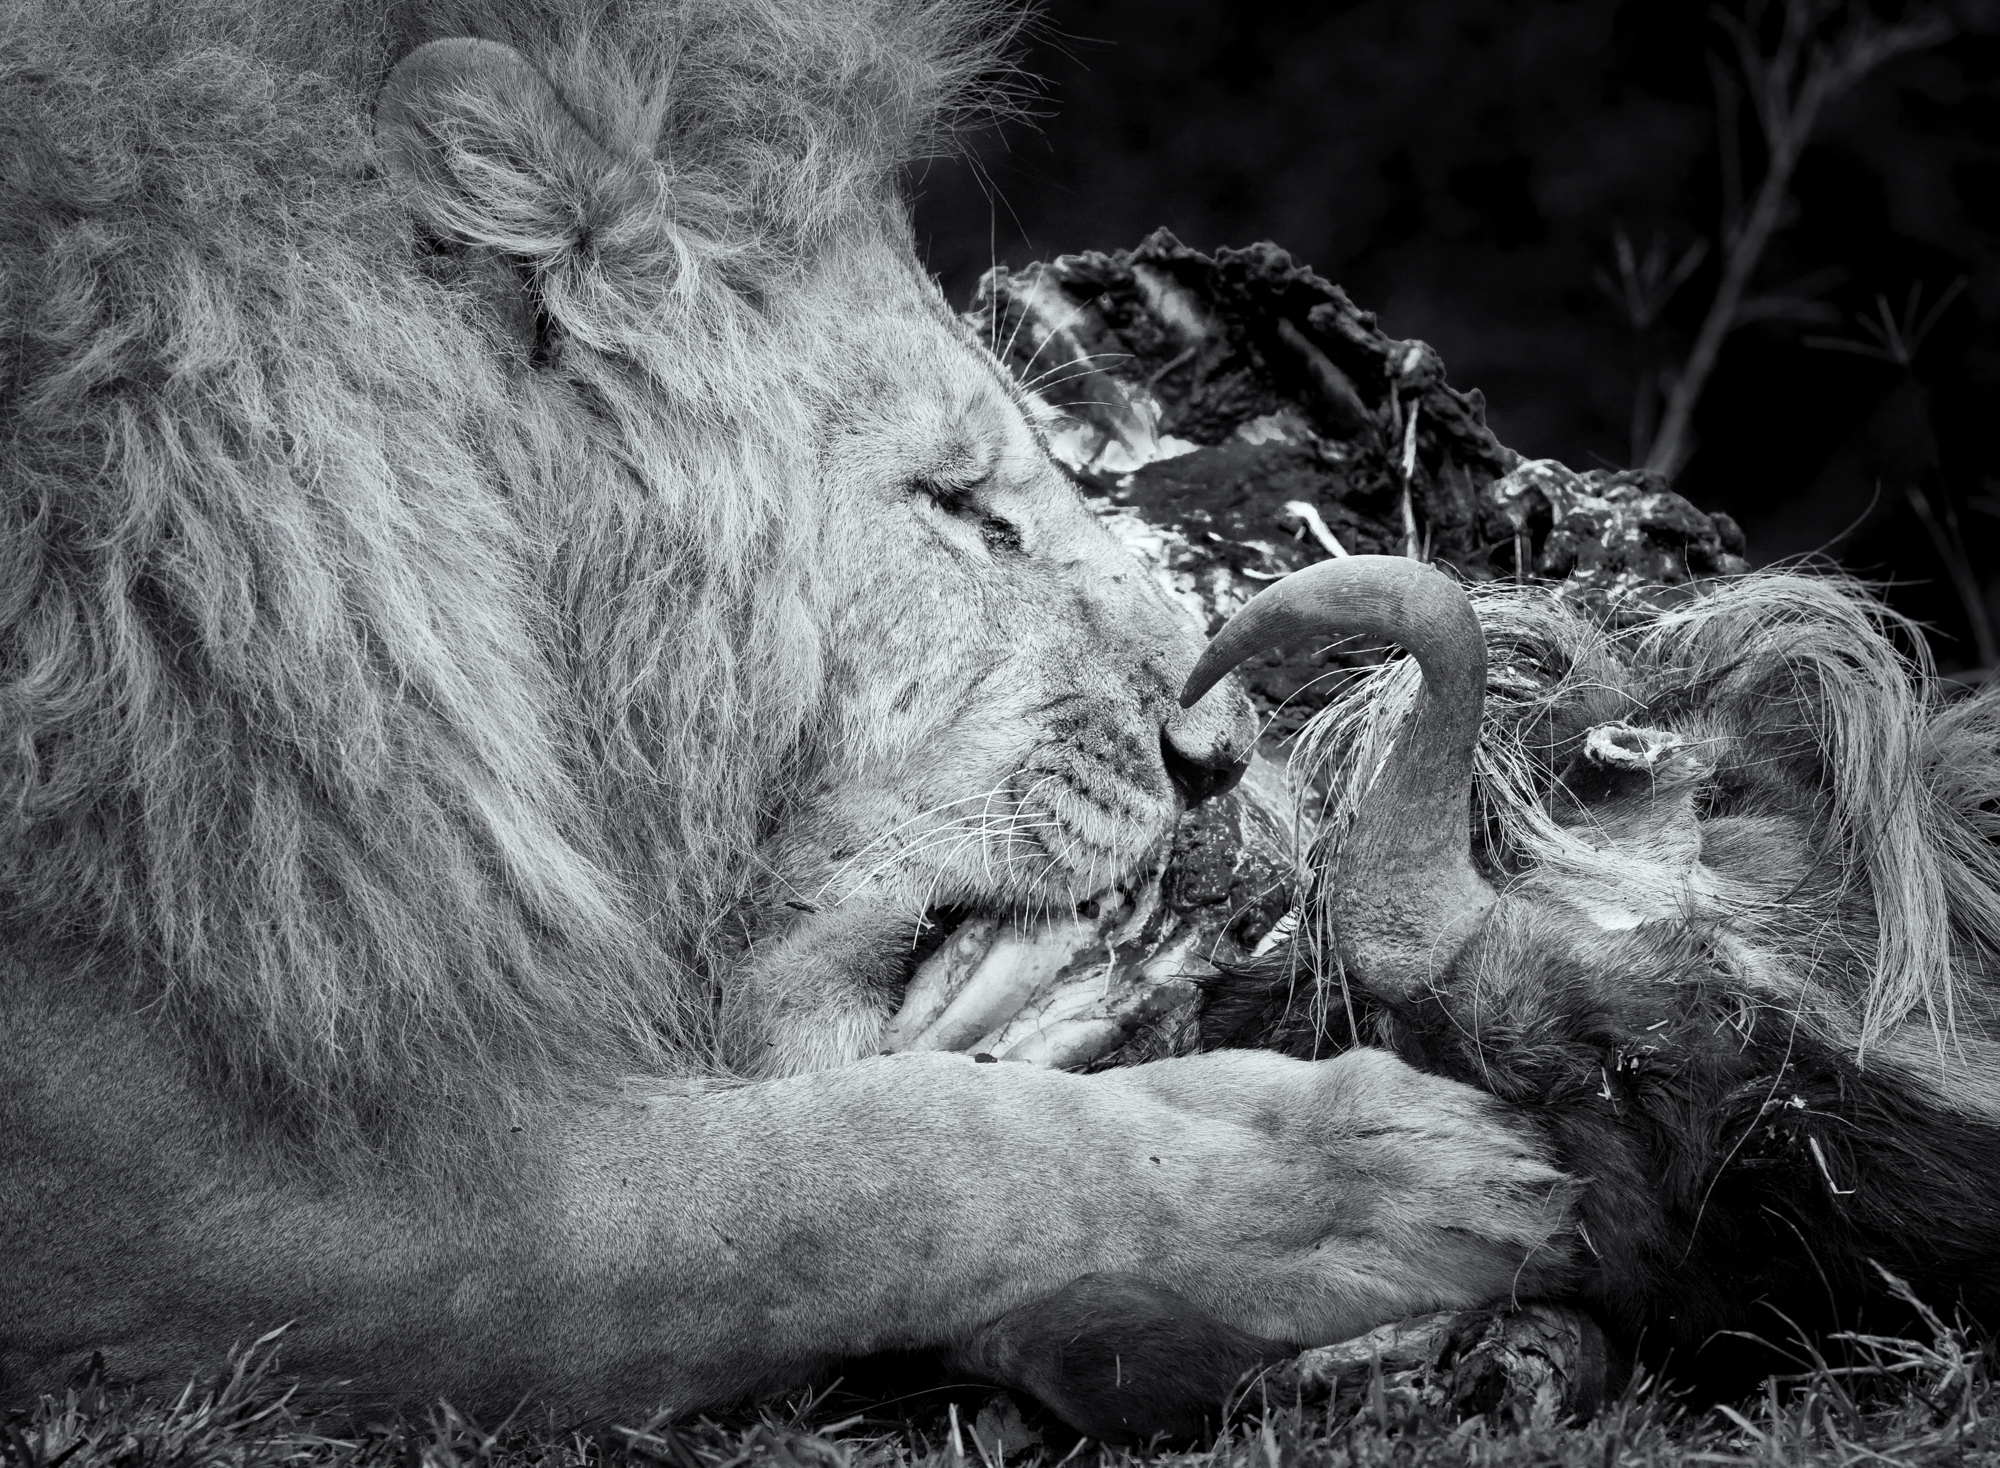 A large male lion feeding on a wildebeest